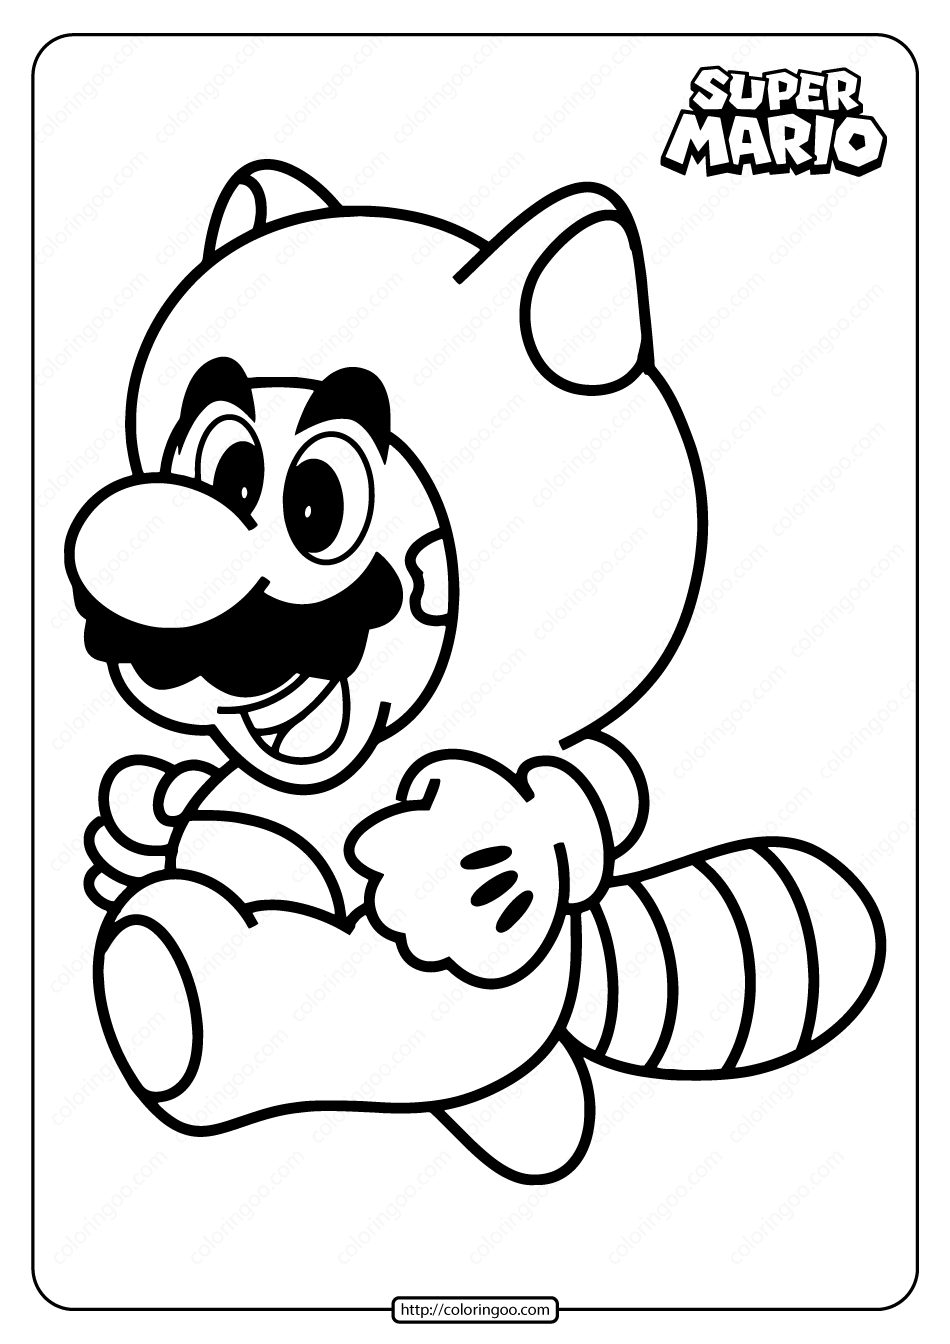 coloring pages printable free free printable super mario coloring page pages coloring free printable